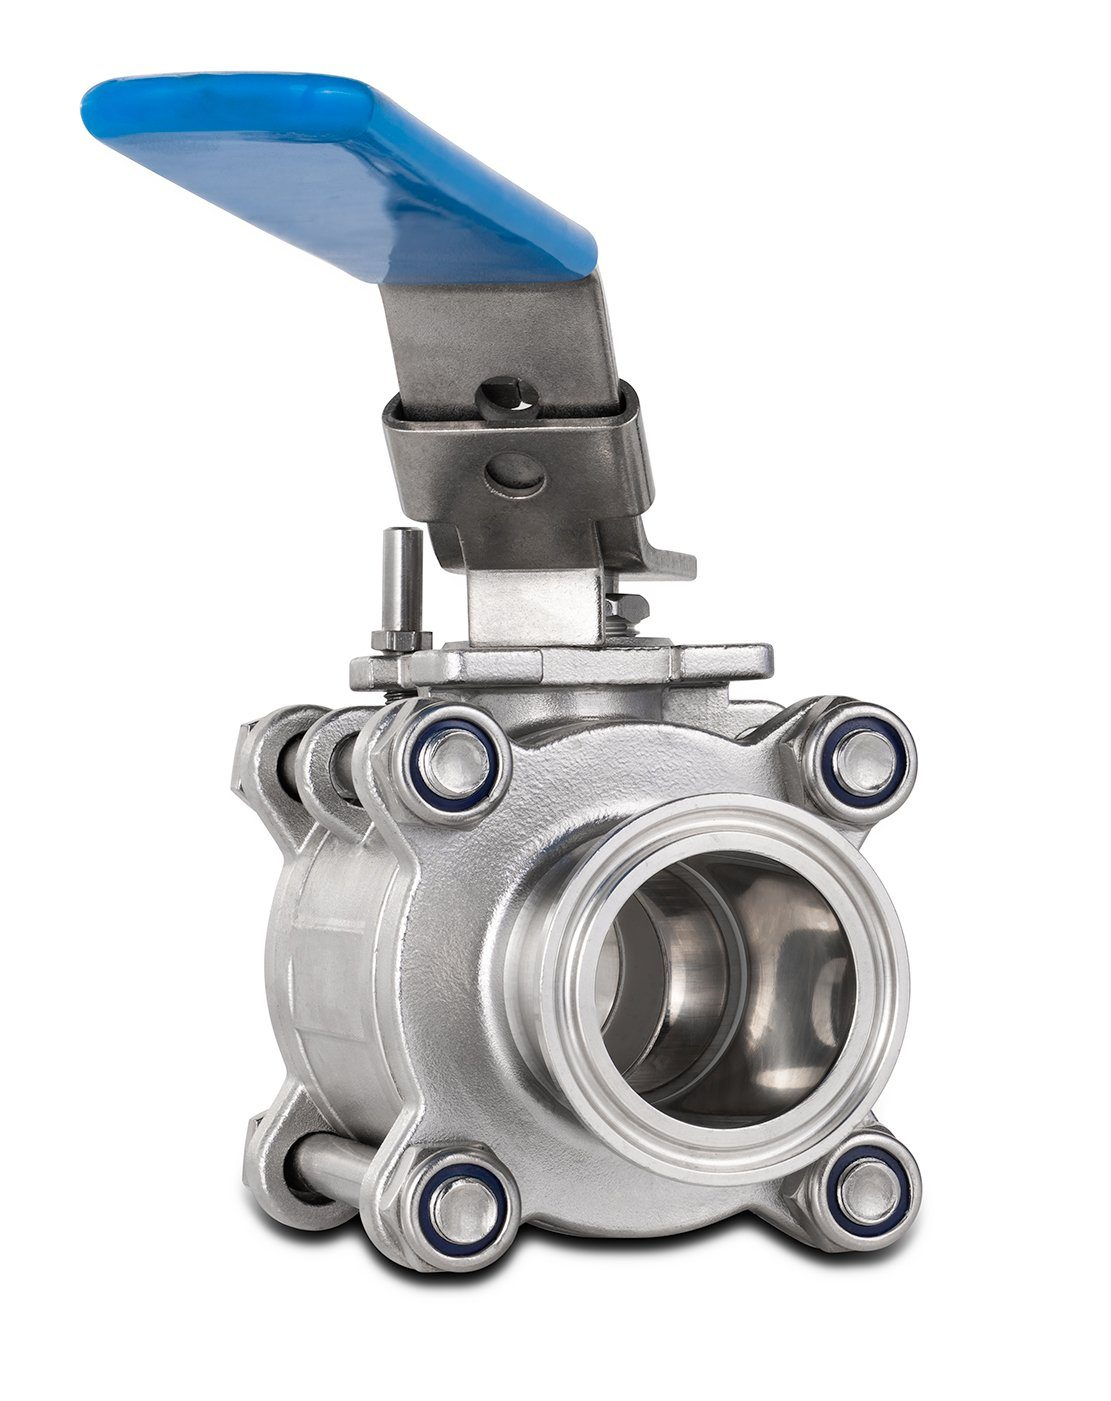 316L SS Tri-Clamp Ball Valve KIT Shop All Categories BVV